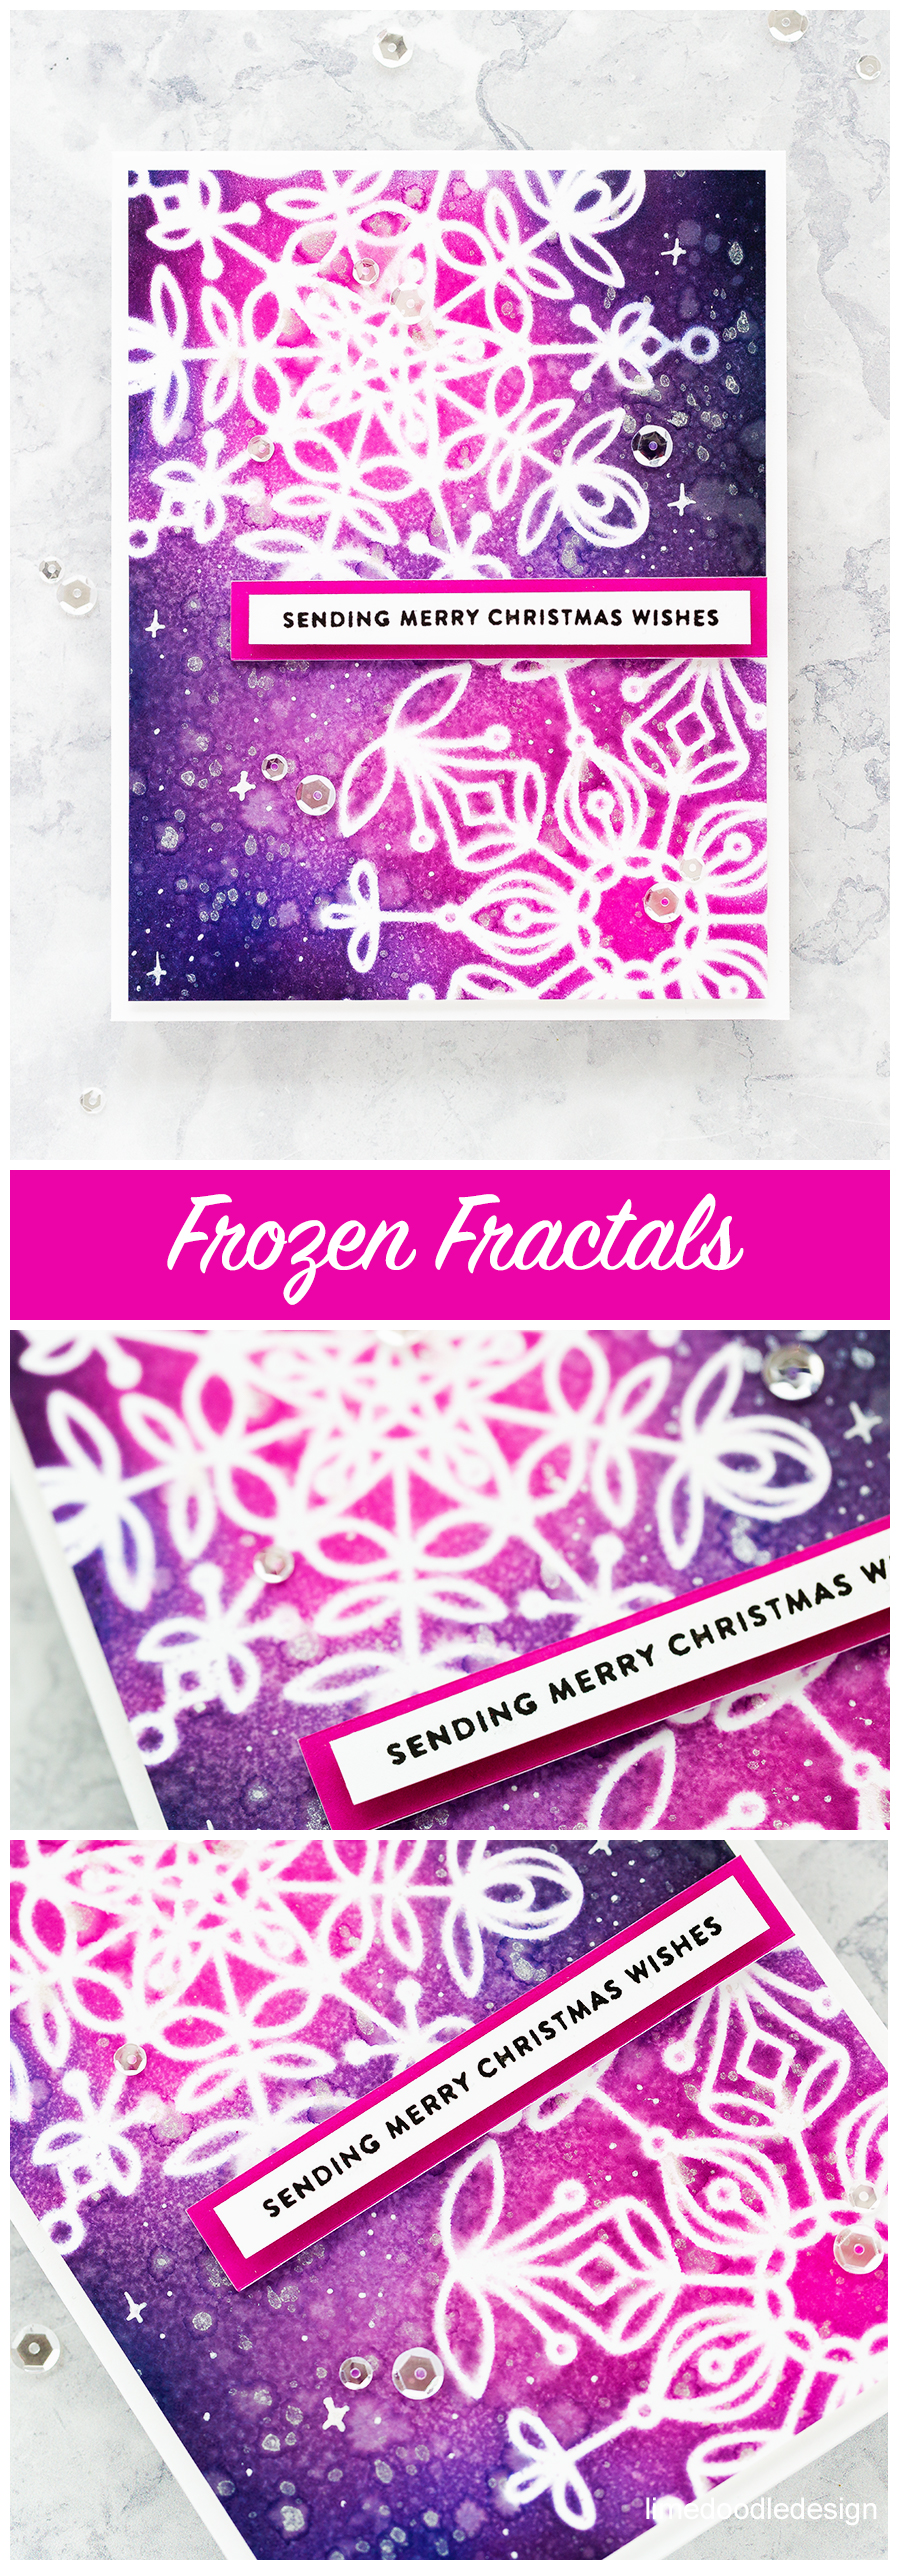 Frozen Fractals stencils - handmade Christmas card by Debby Hughes and a look at the new Holiday release from Simon Says Stamp. Find out more here: http://limedoodledesign.com/2017/10/delicate-stencil-snowflakes-simon-says-stamp-holiday-release/